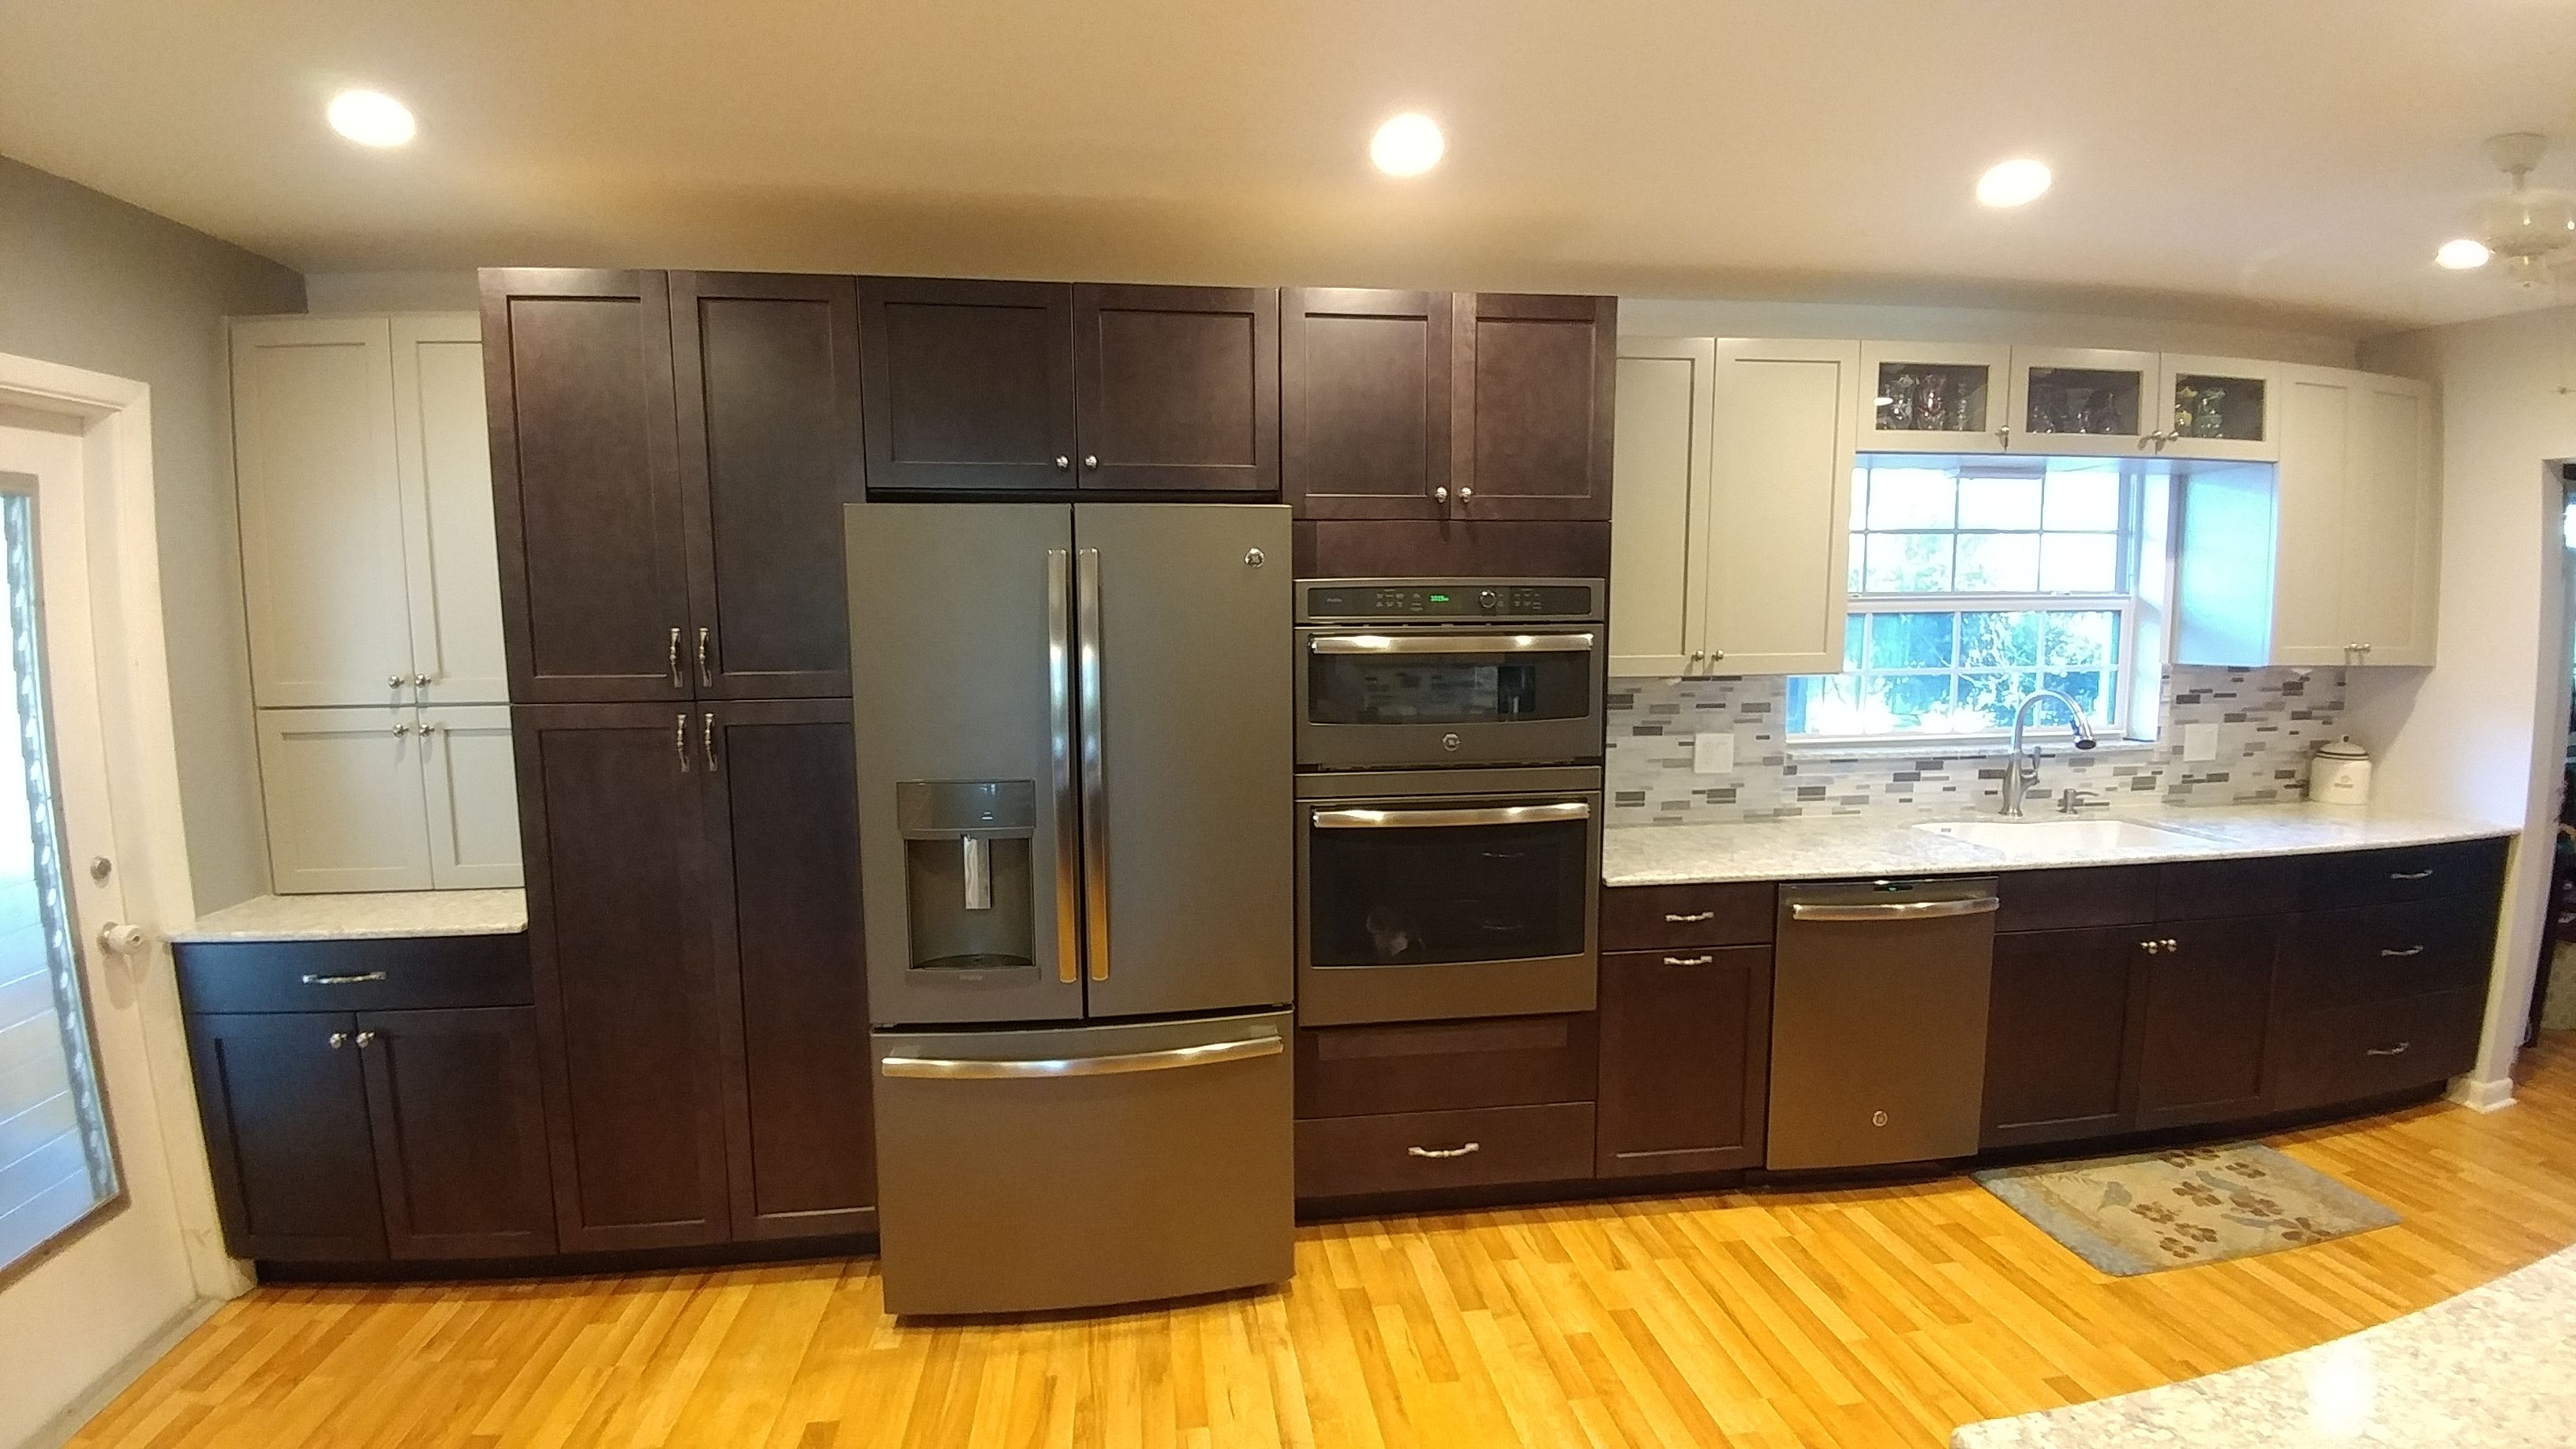 After We Removed A Large Window To Make Room For The Tall Pantry Refrigerator And Double Wall Oven For Our Lovely Homeo Cabinet Two Tone Kitchen Wall Cabinet